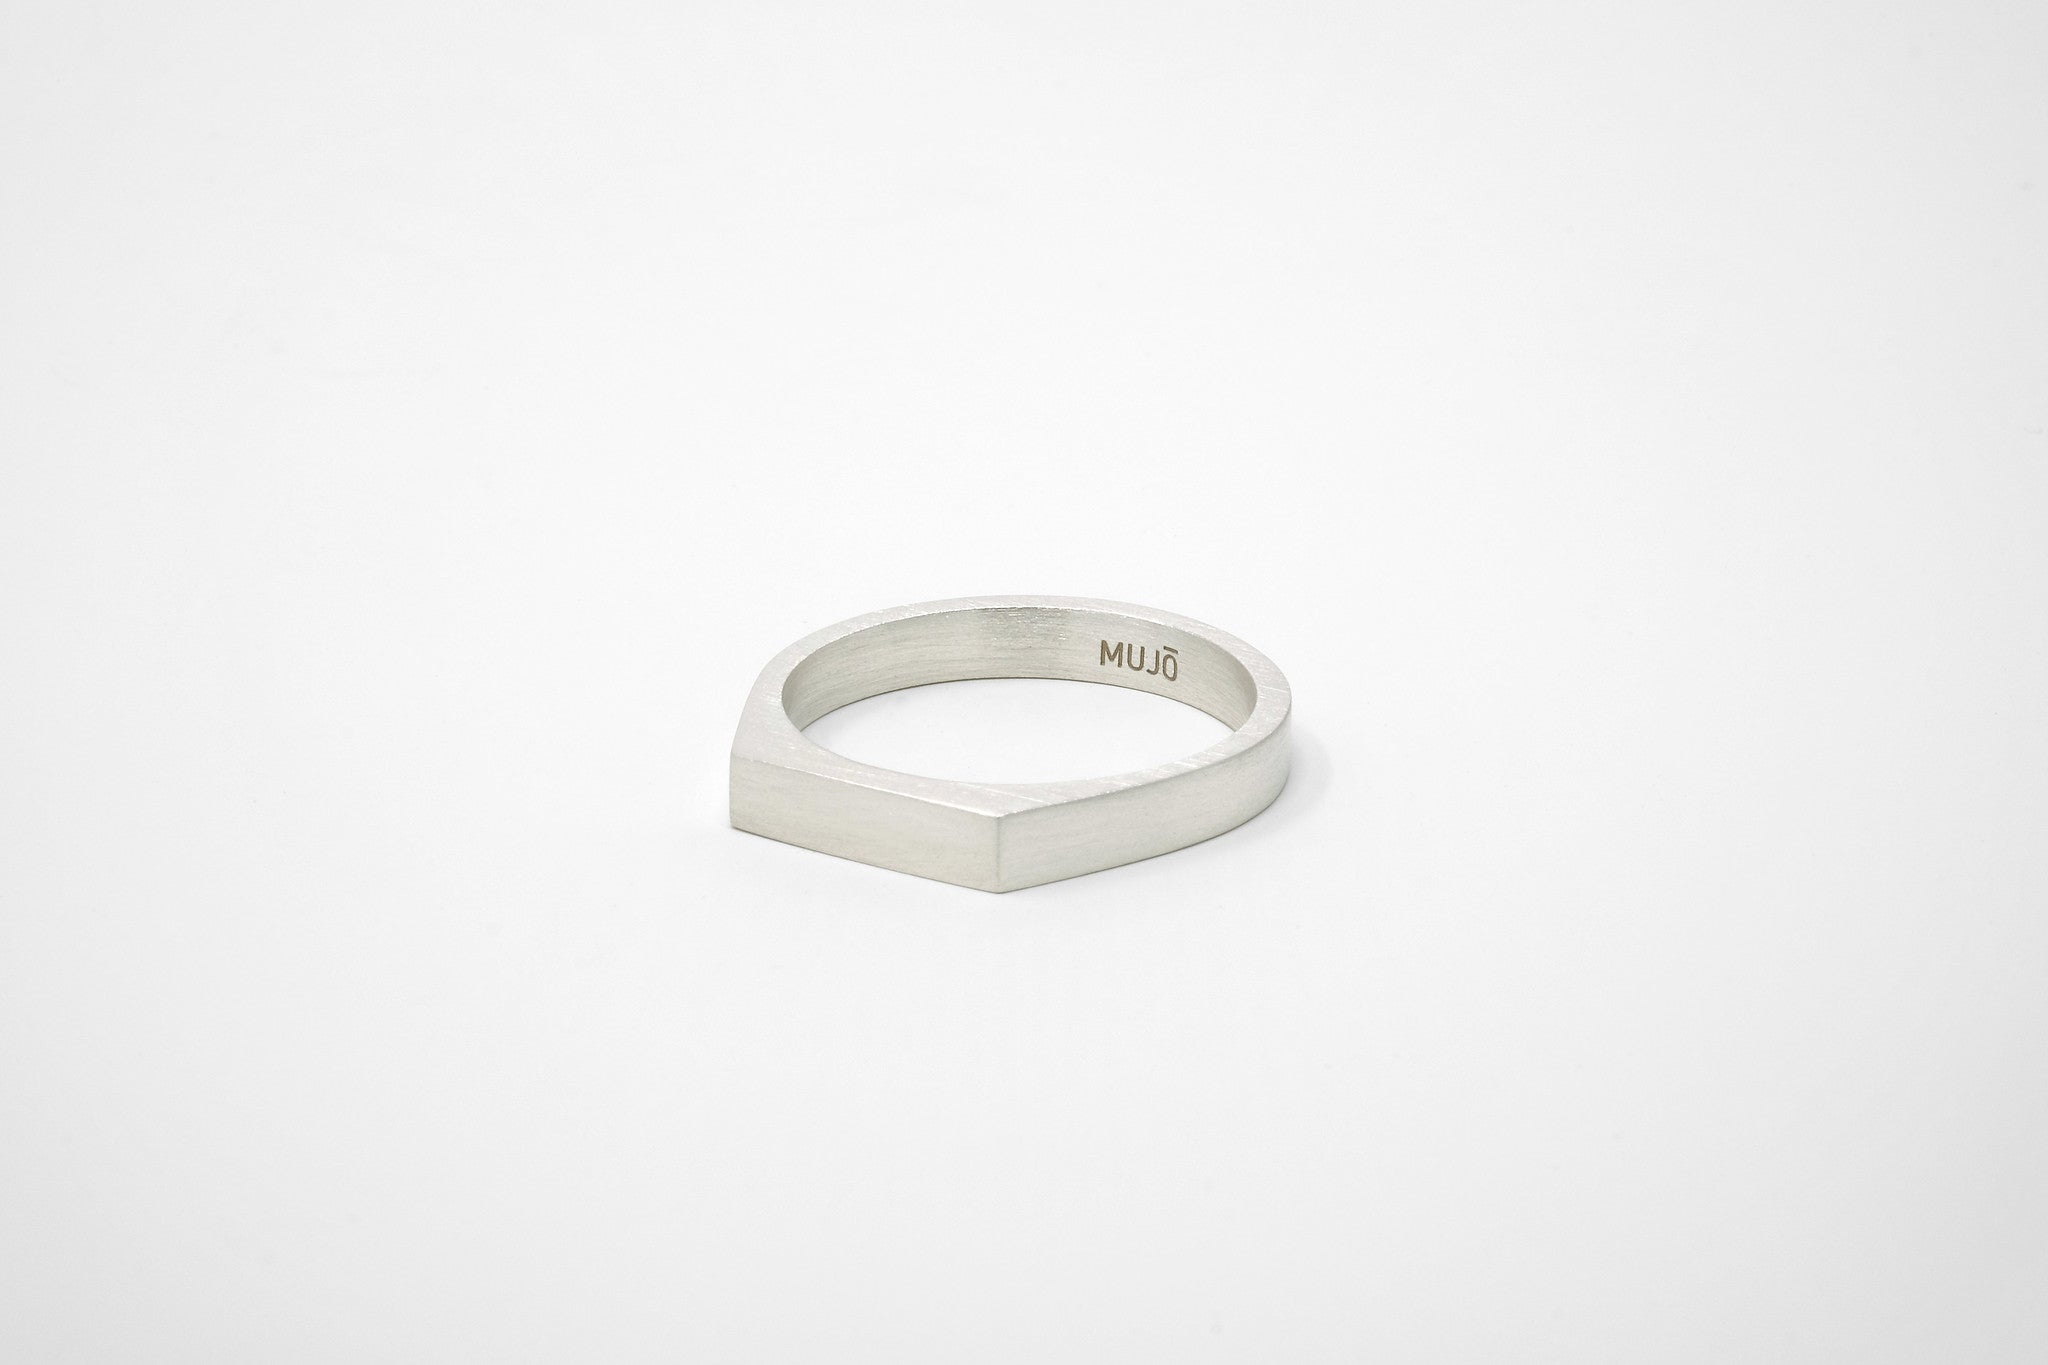 CS 4mm Signet Ring // Sterling Silver - Men's Ring - MUJO NYC - 1